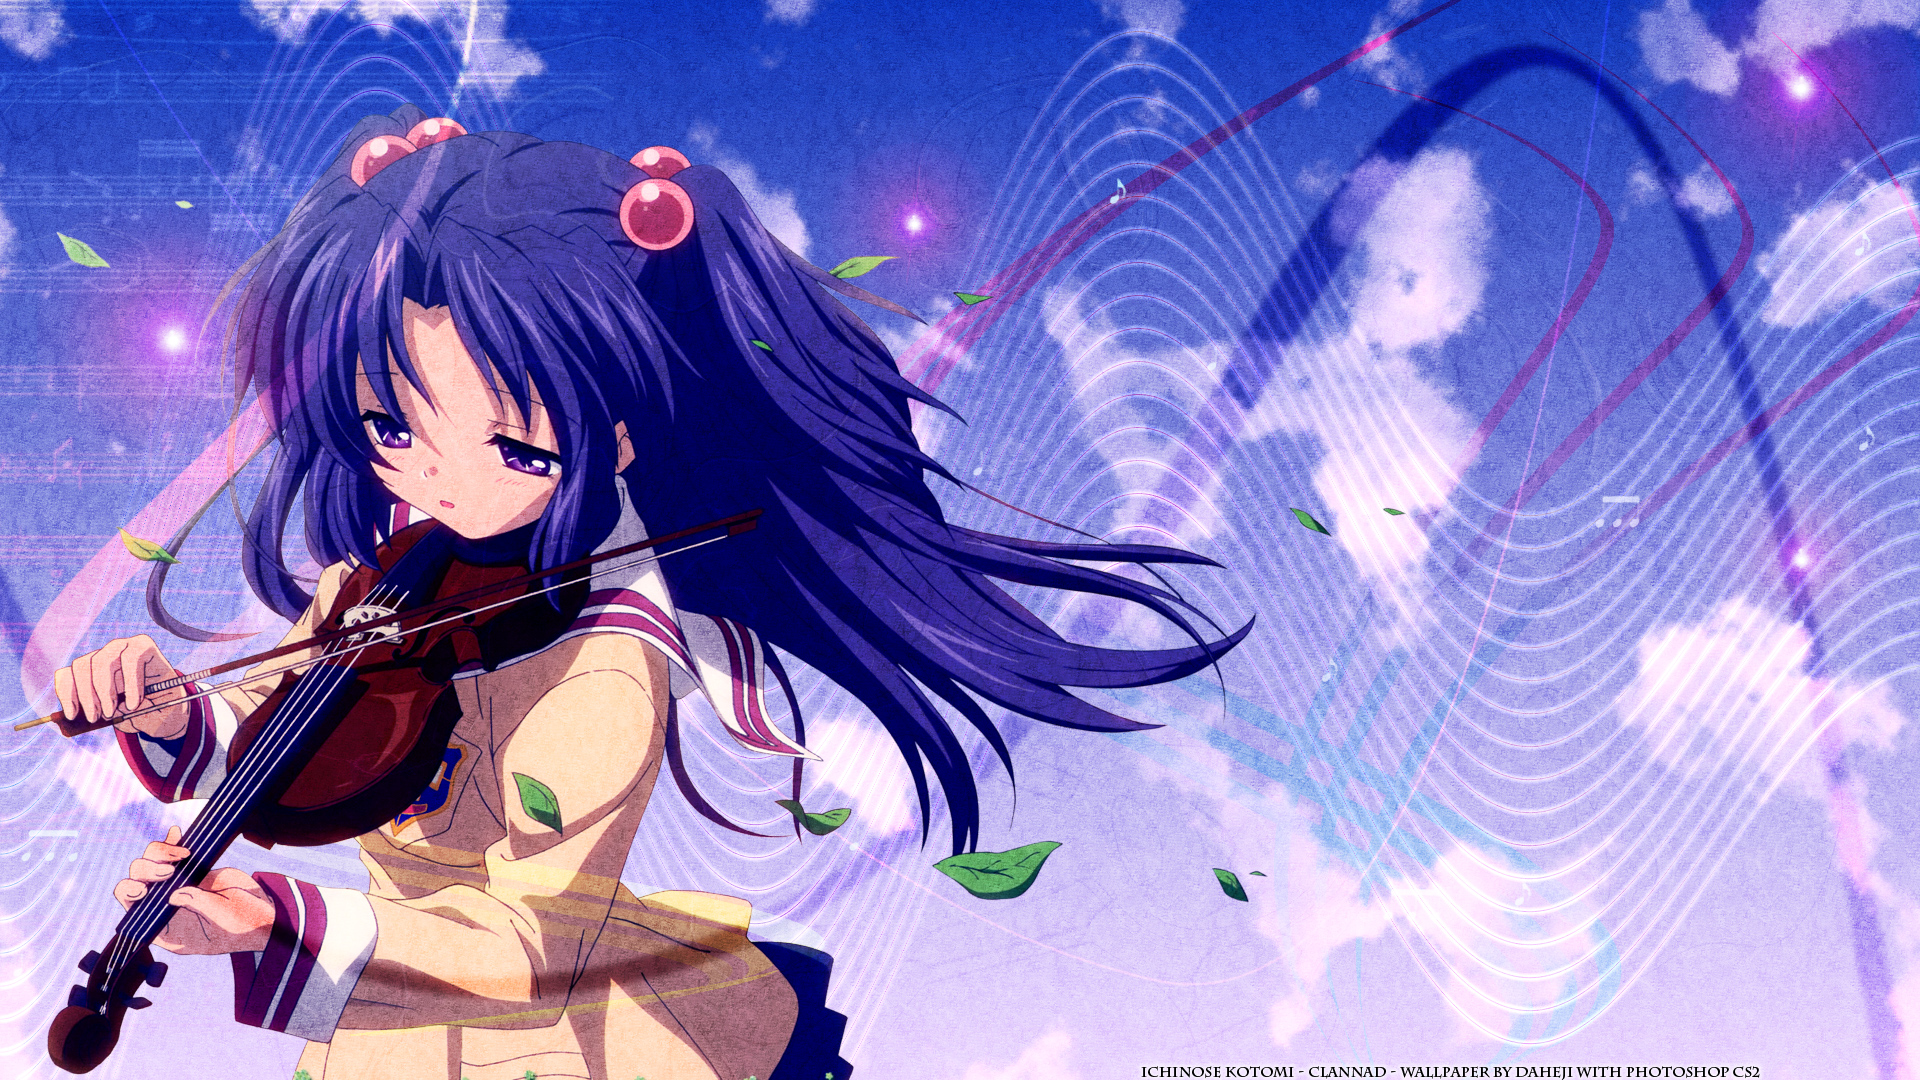 CLANNAD Girls images Kotomi Ichinose HD wallpaper and 1920x1080